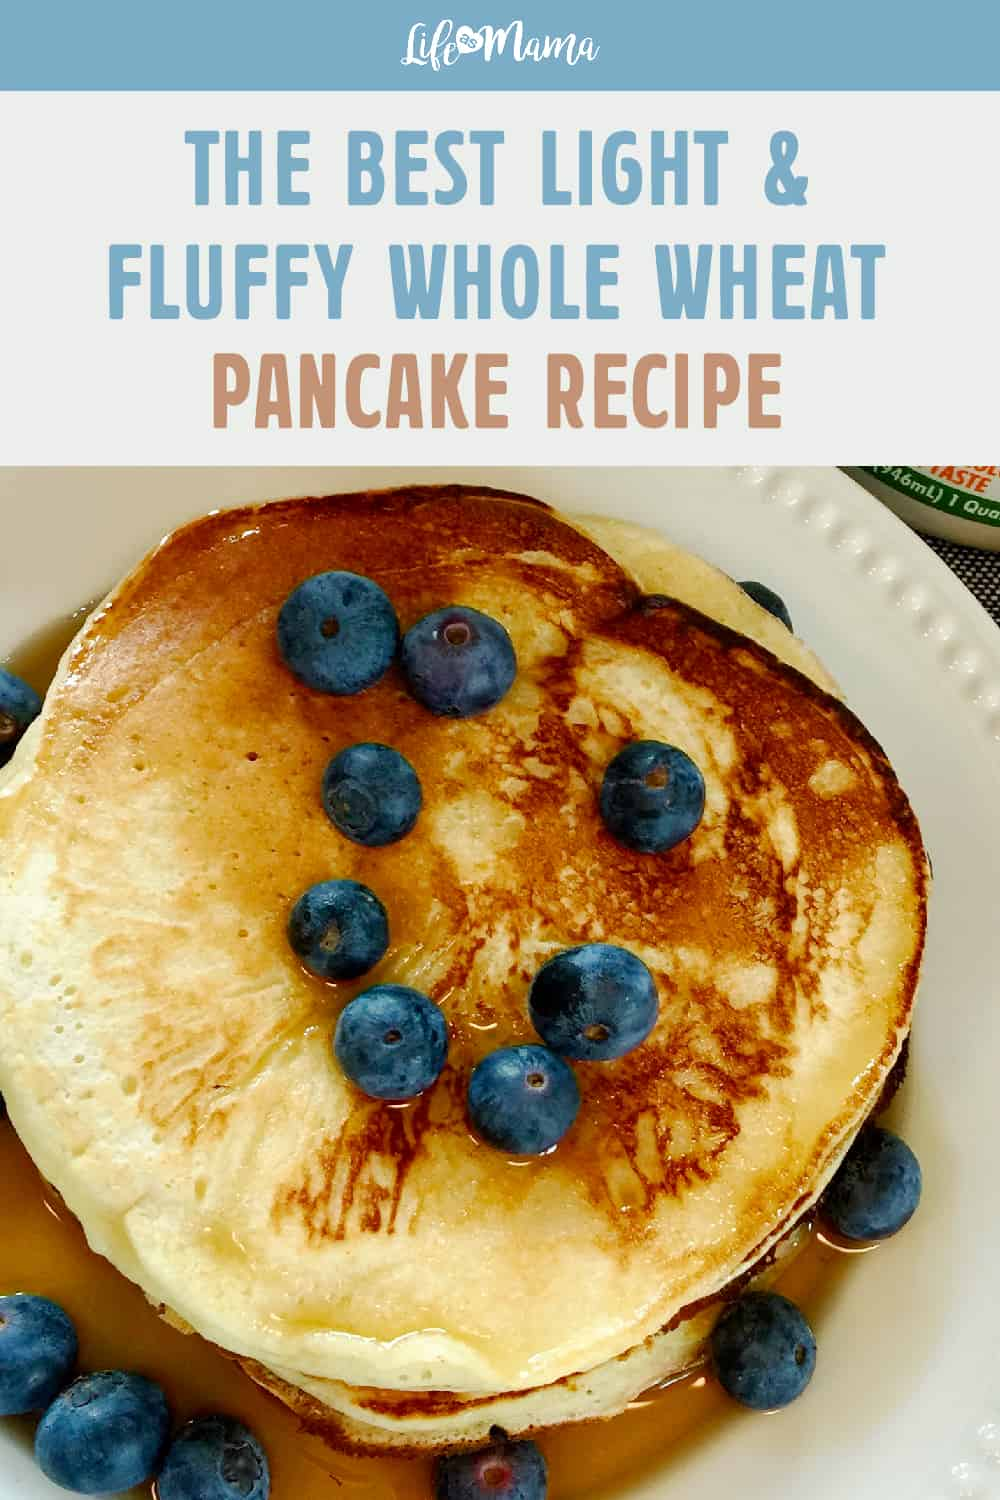 The Best Light & Fluffy Whole Wheat Pancake Recipe-01-01